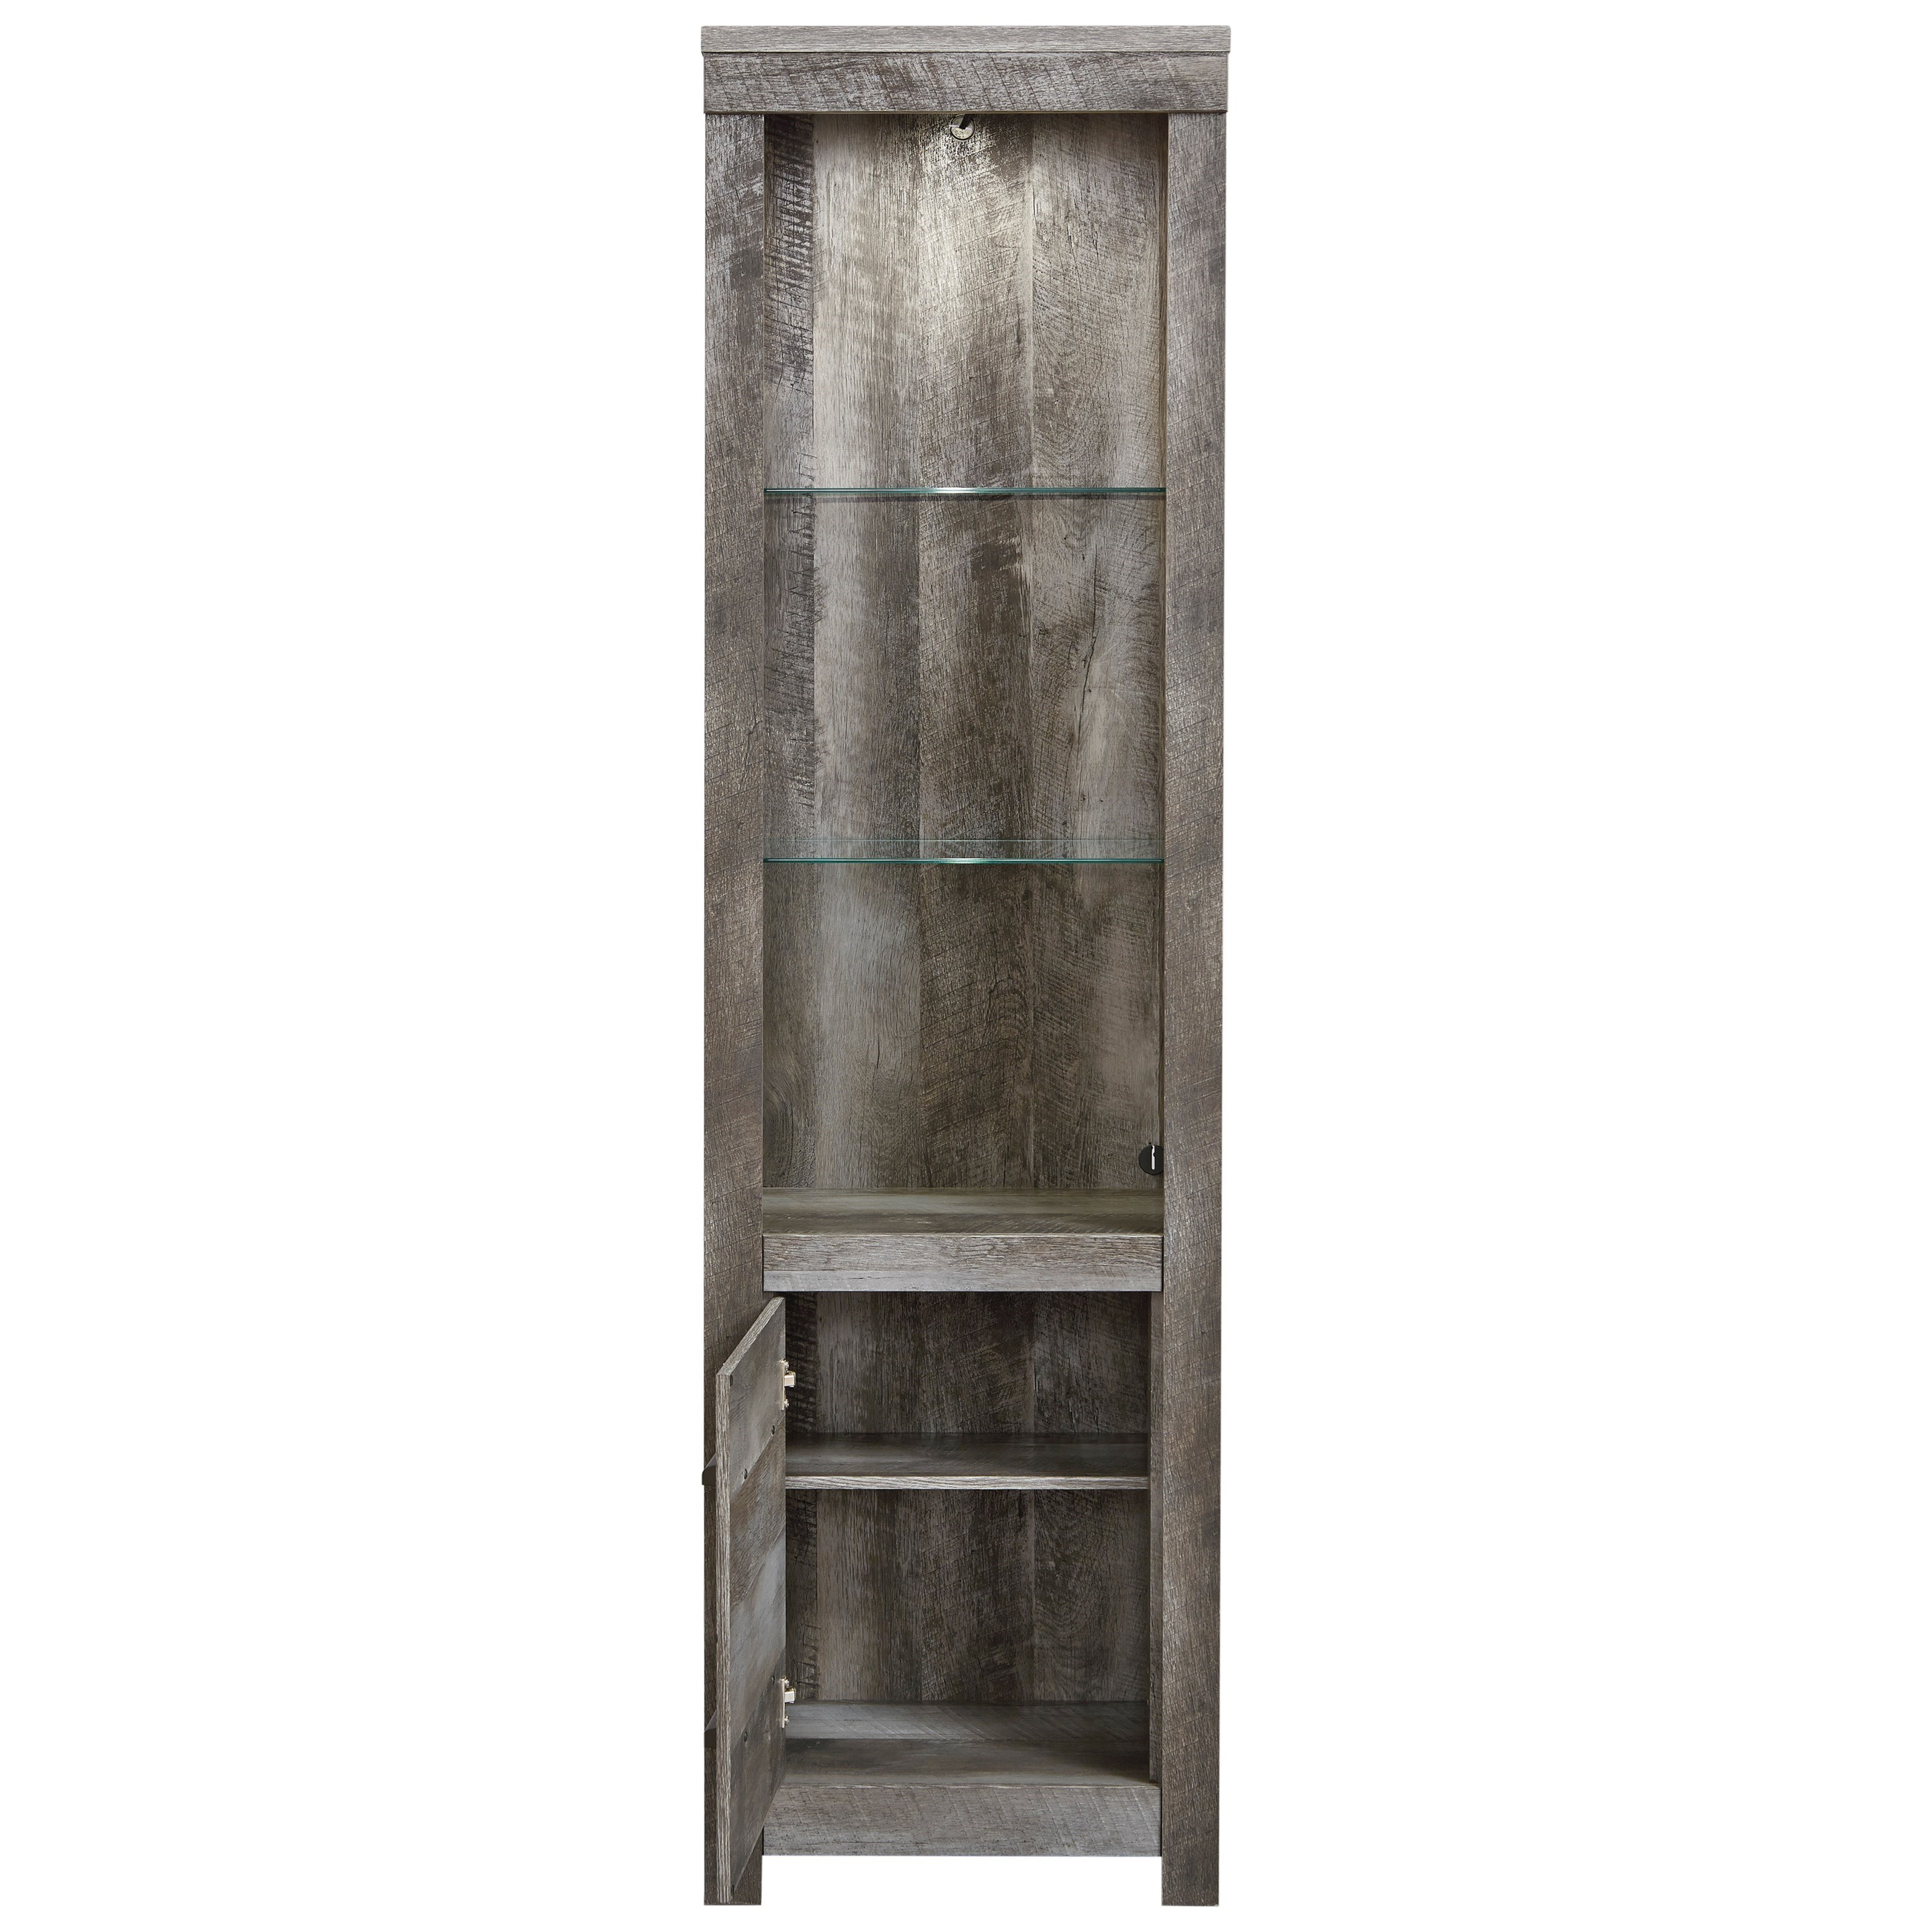 Ashley Furniture Wynnlow Gray Entertainment Center With: Signature Design By Ashley Wynnlow Wall Unit With 2 Piers